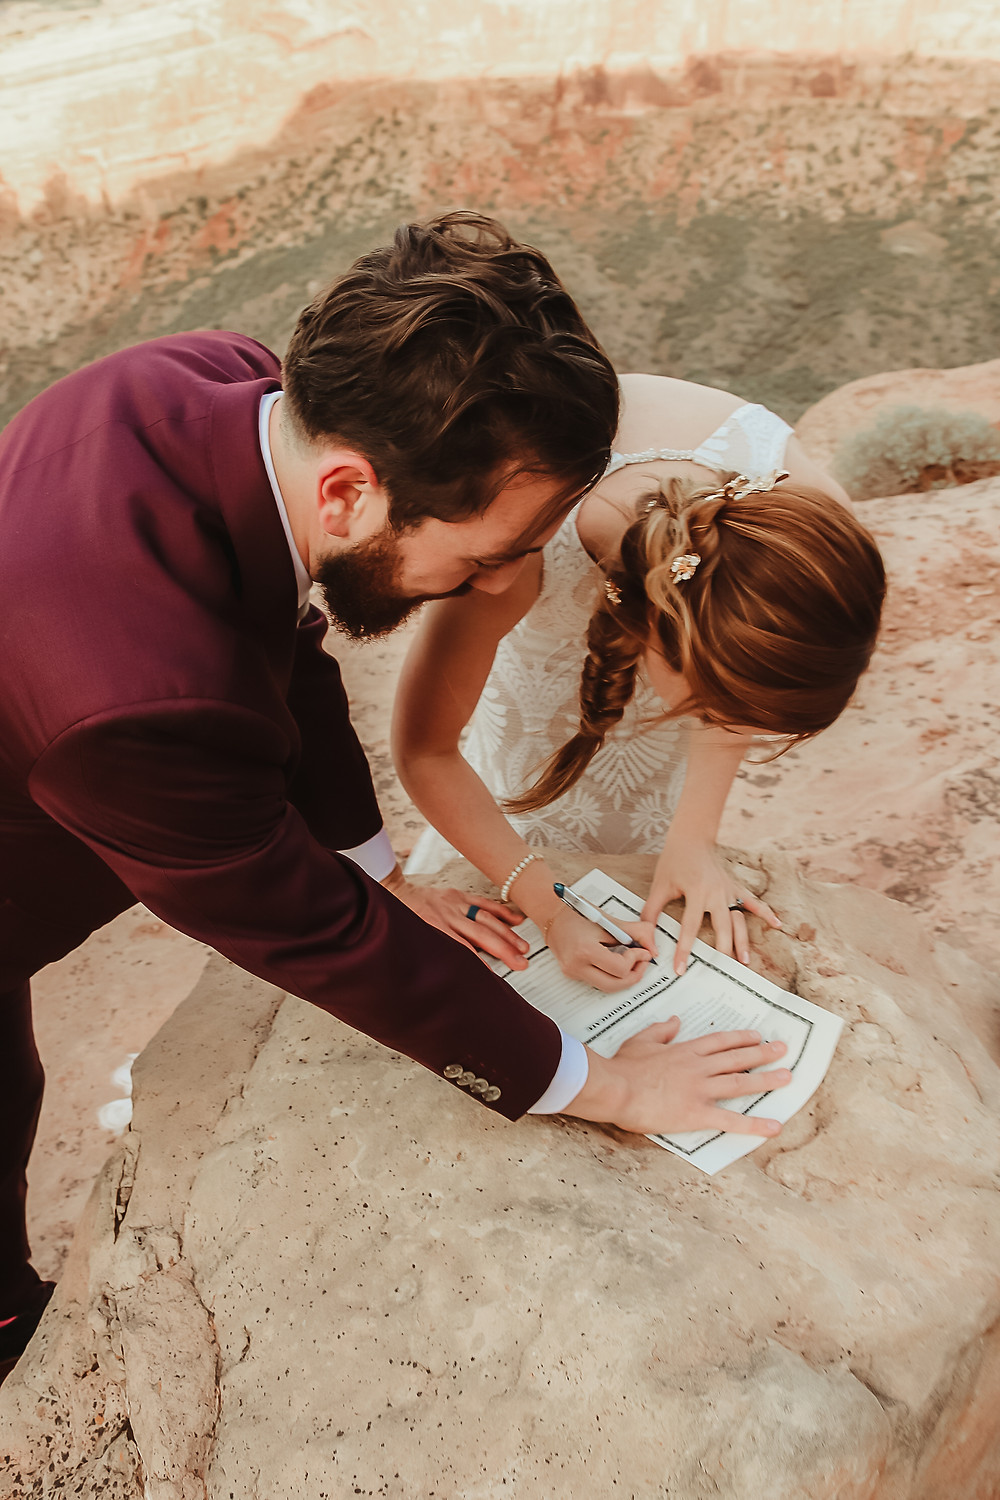 Colorado National Monument intimate elopement bride and groom elope desert scenery Bookcliff Overlook sign marriage license